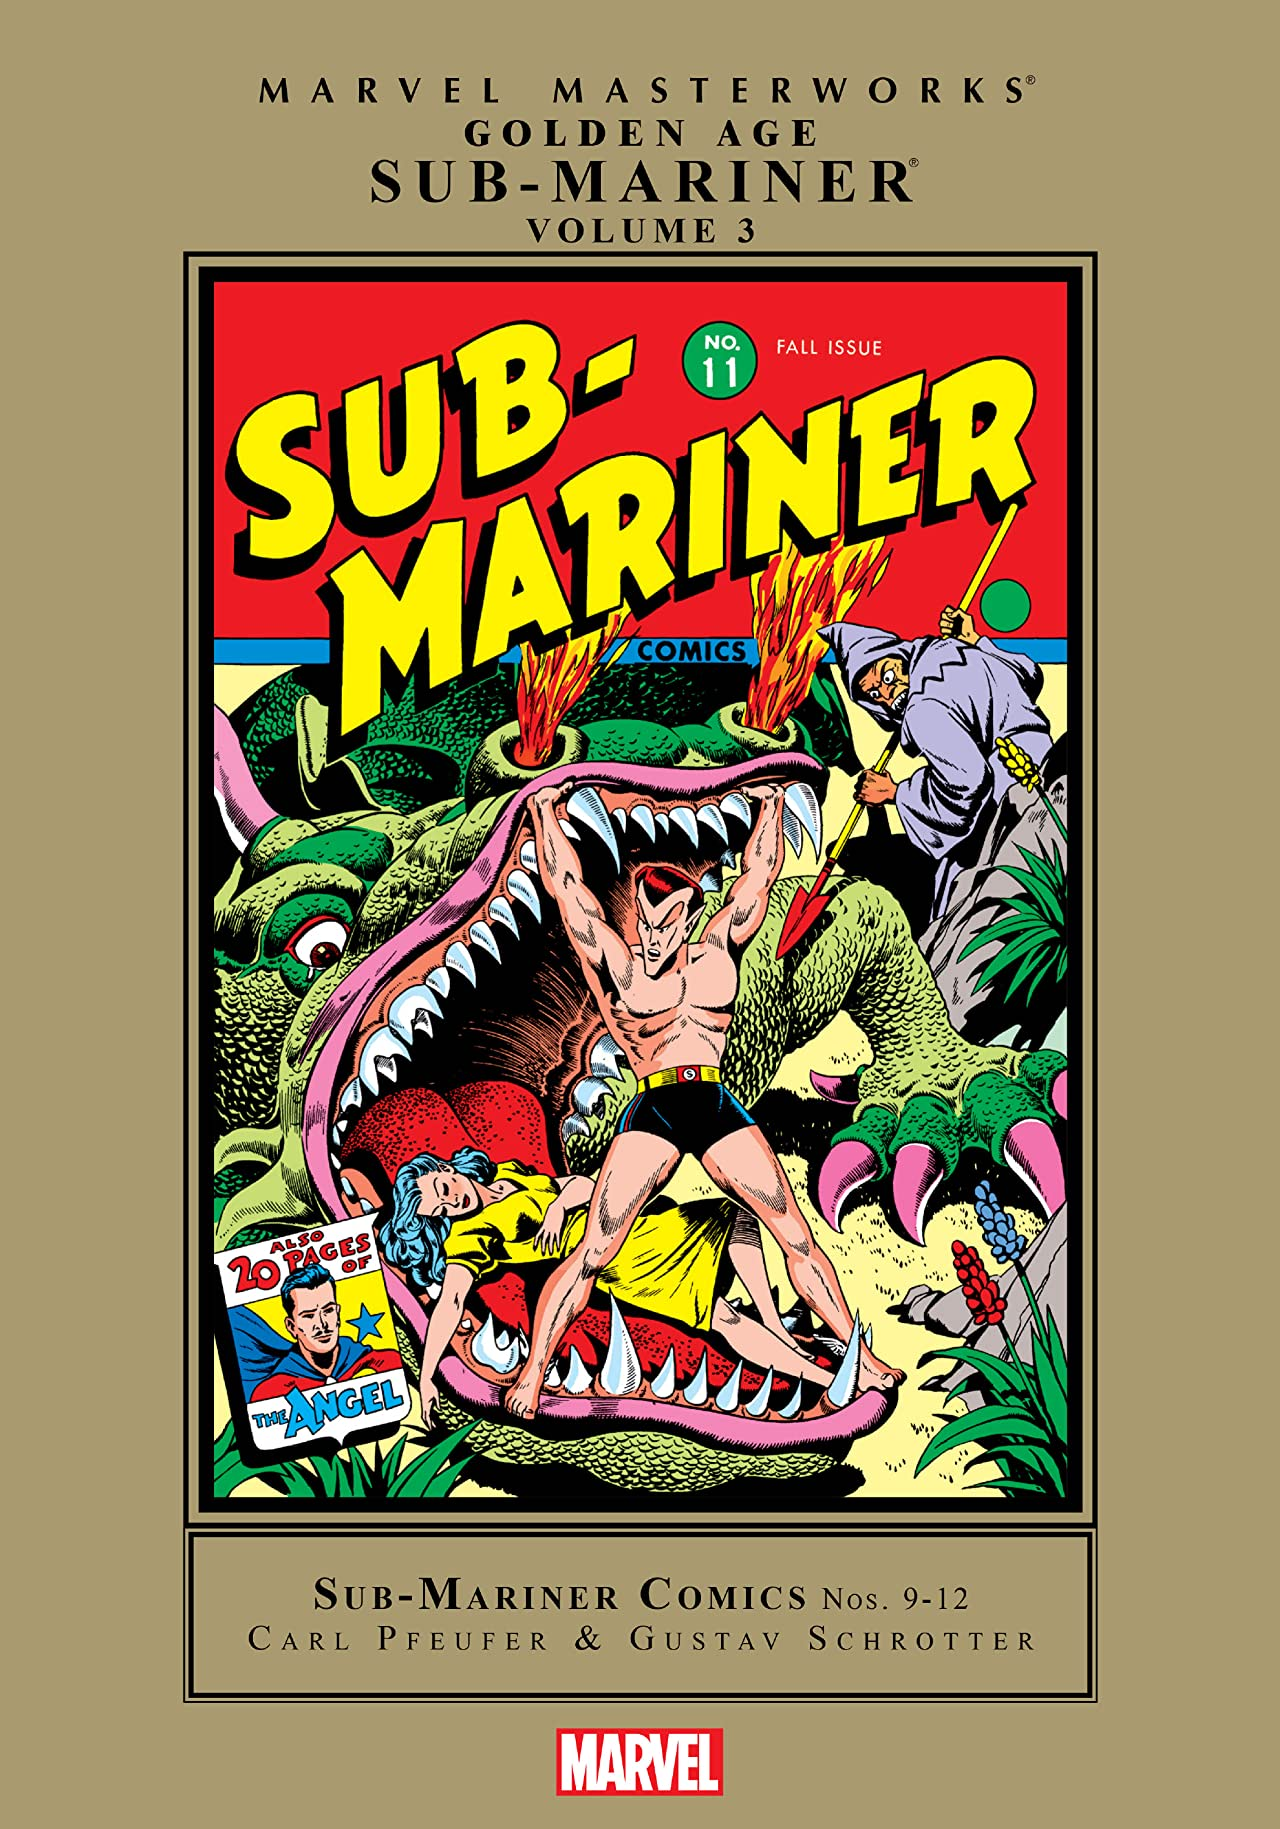 Sub-Mariner: Golden Age Masterworks Vol. 3